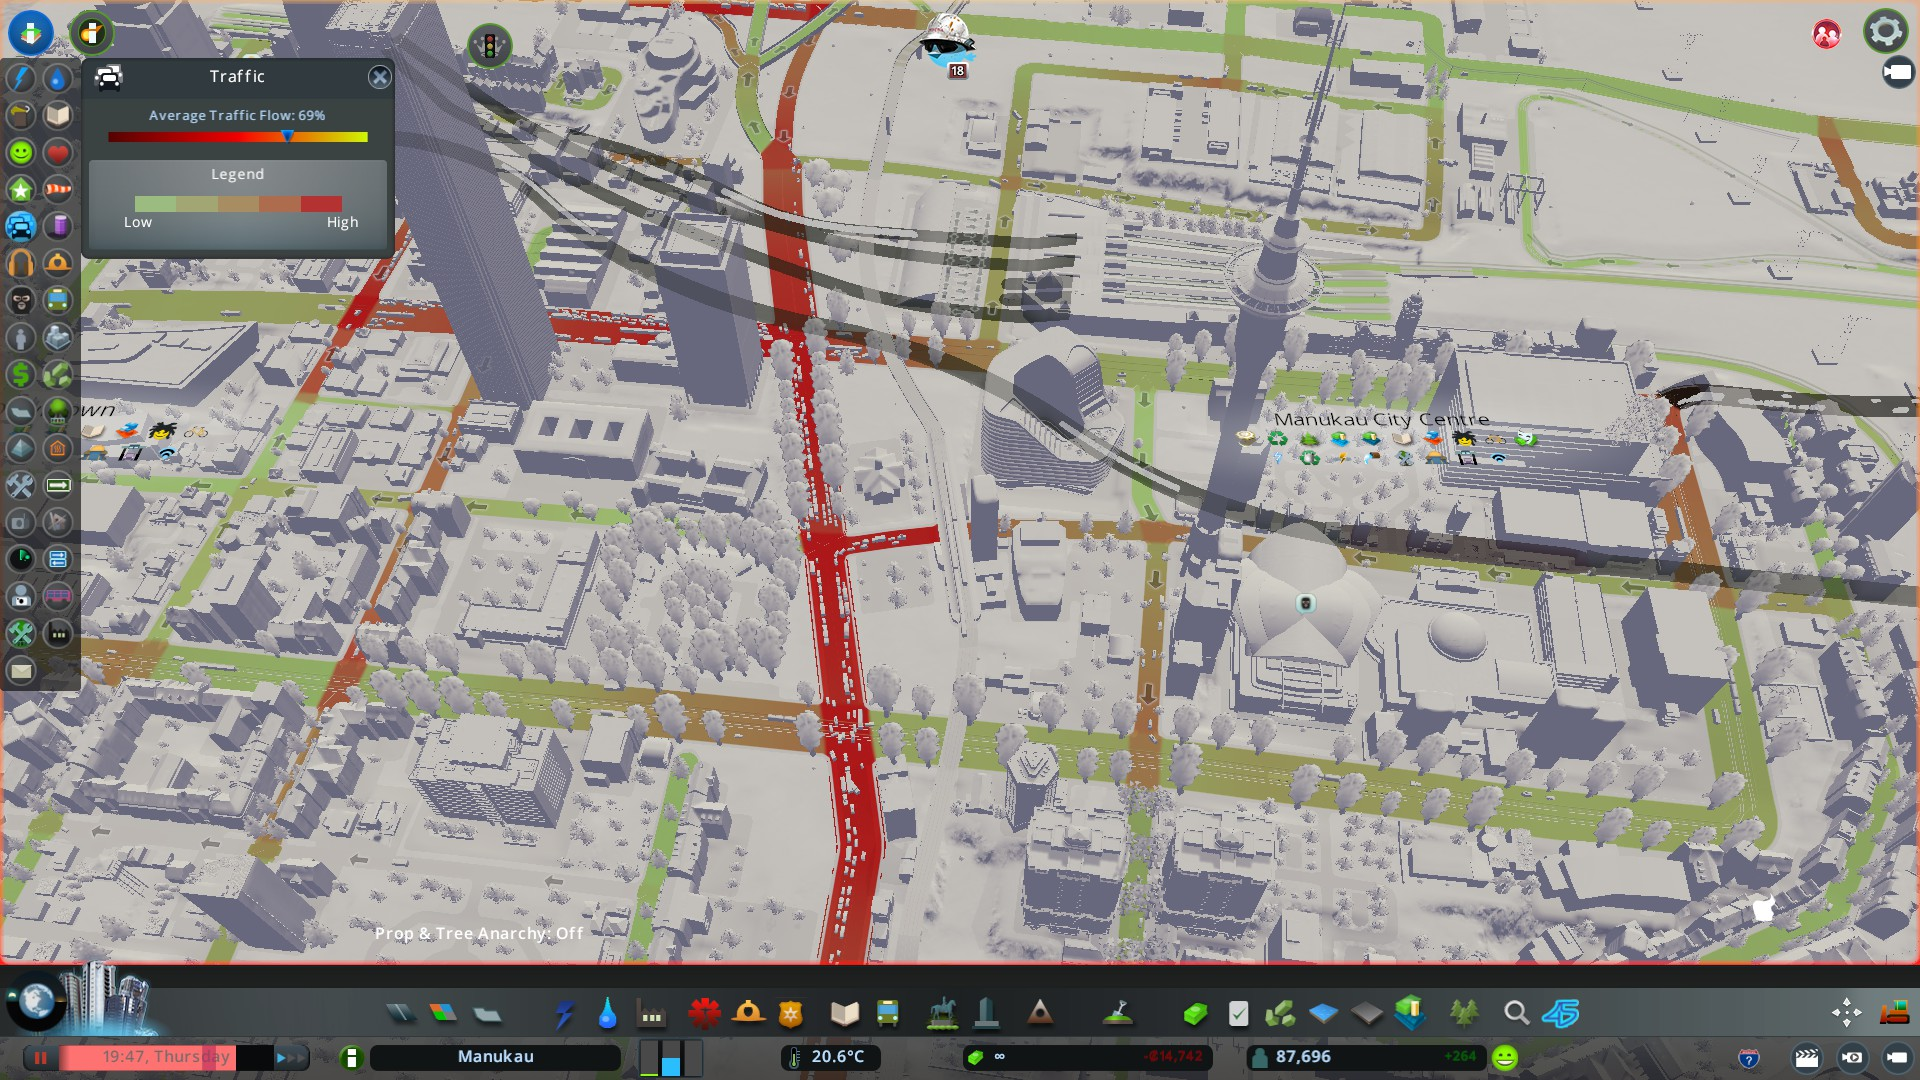 MY CITY IS A COMPLETE MESS! A City Planner using an Urban Simulator to Help Us Fix our City Messes #CitiesSkylines